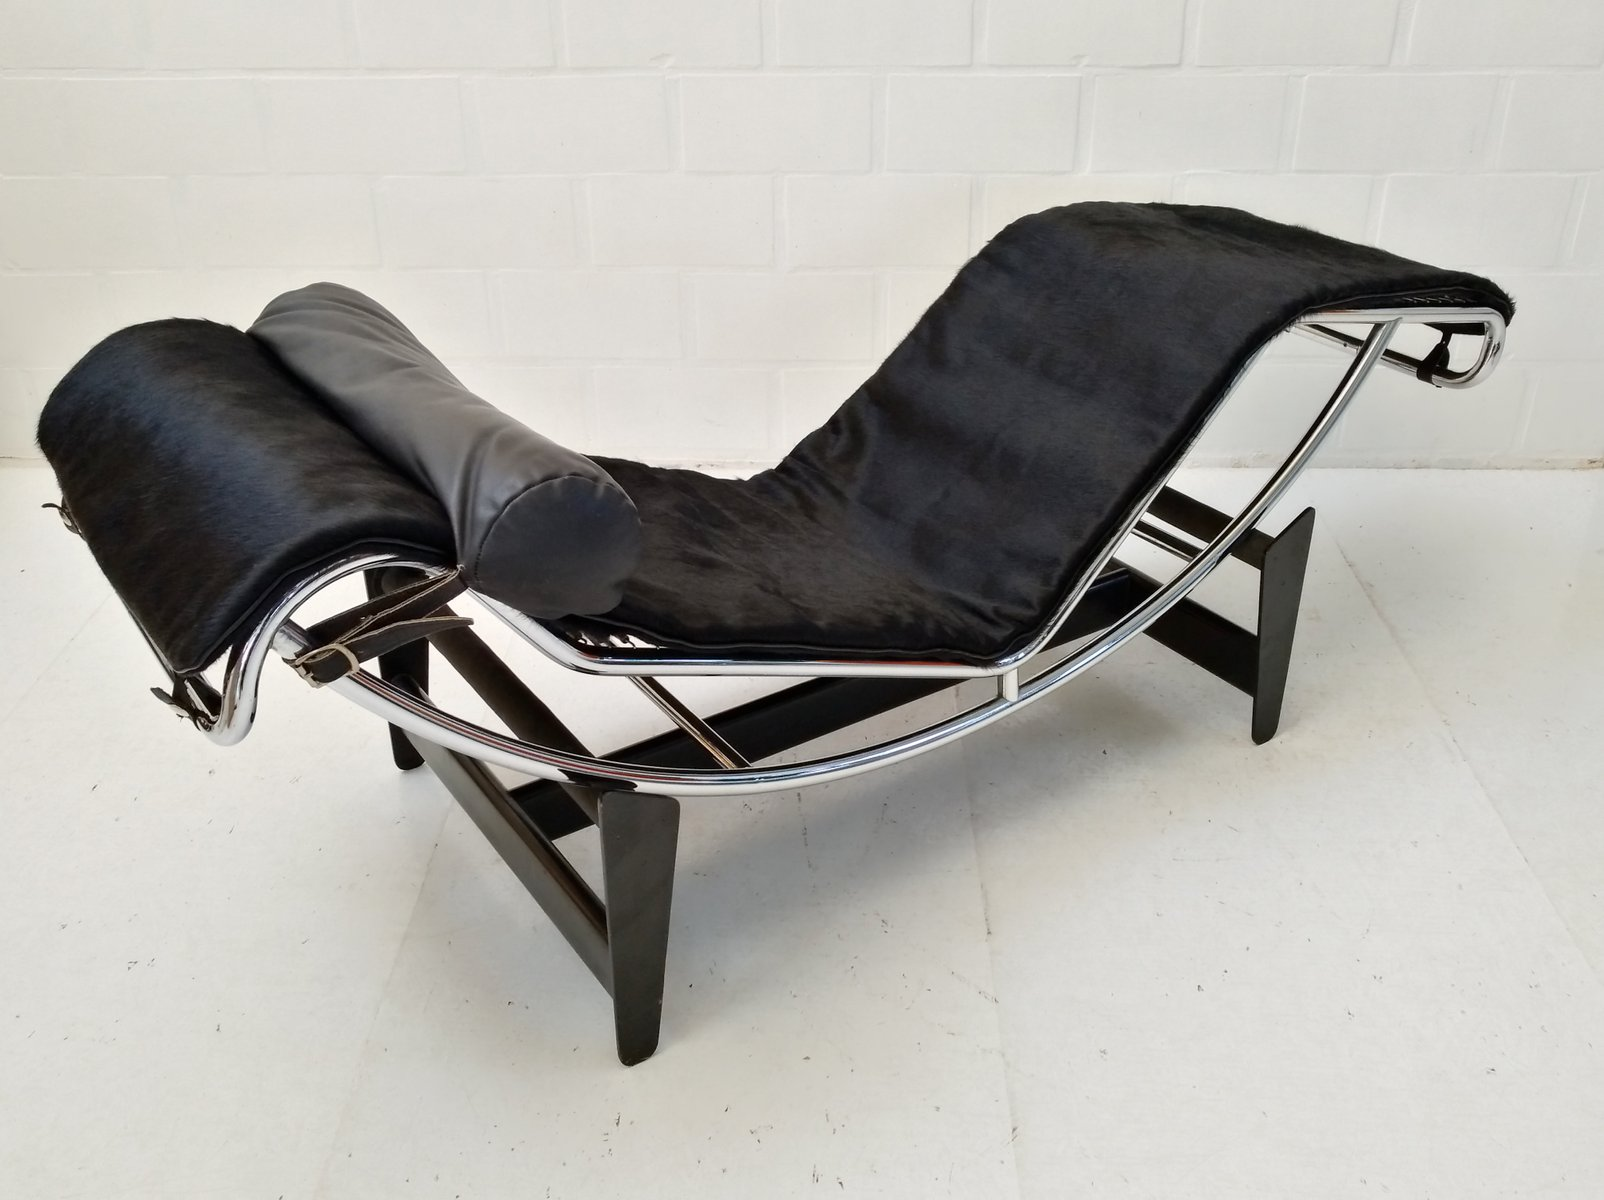 Early lc4 chaise longue by le corbusier perriand for Chaise longue by le corbusier